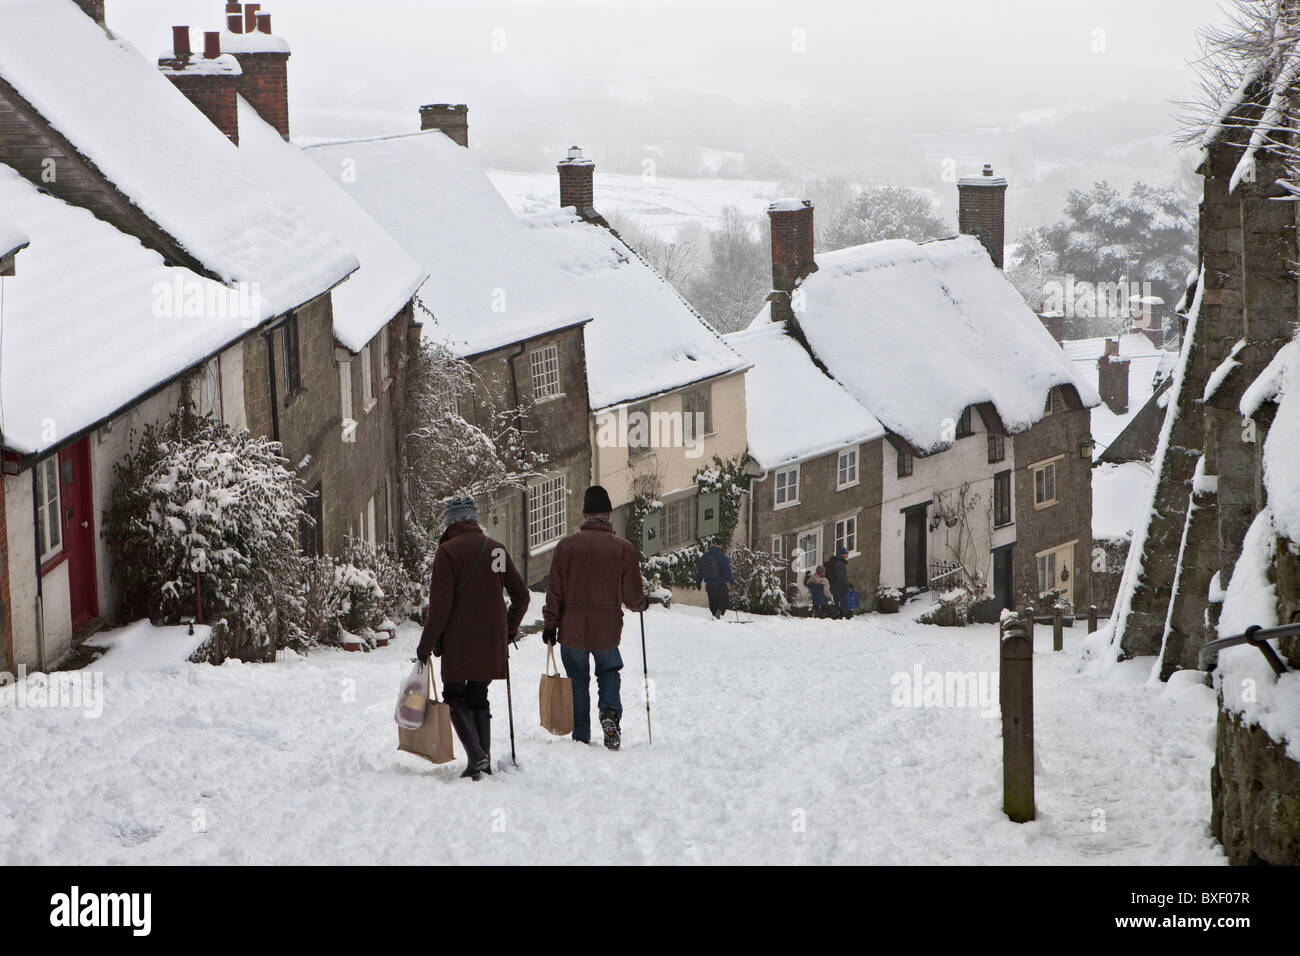 Two people carefully making their way down Gold Hill in Dorset in the snow on a December morning. People not identifiable. - Stock Image